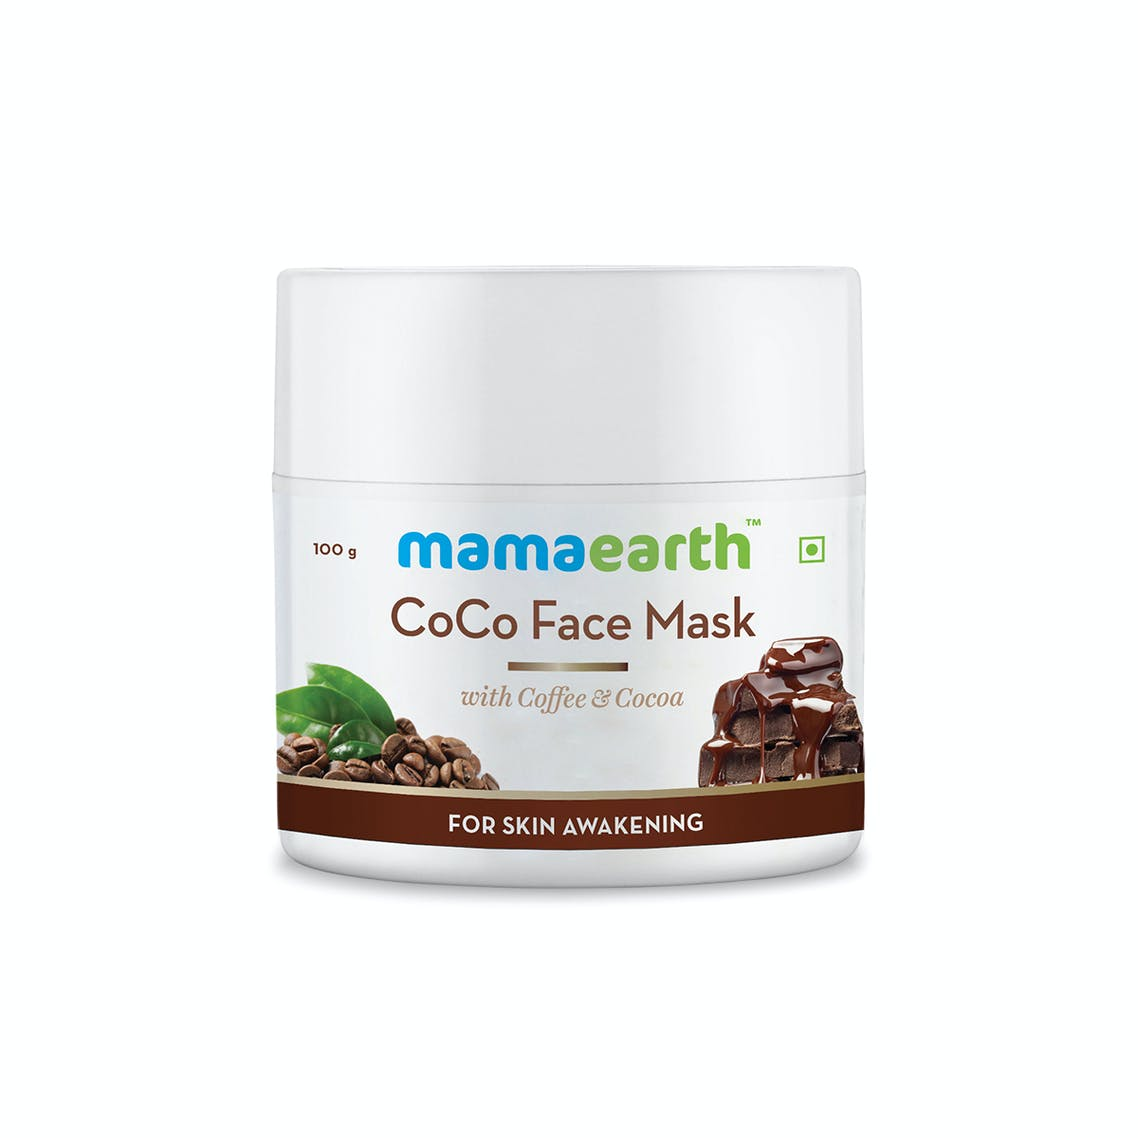 Mamaearth CoCo Face Mask with Coffee & Cocoa for Skin Awakening – 100g